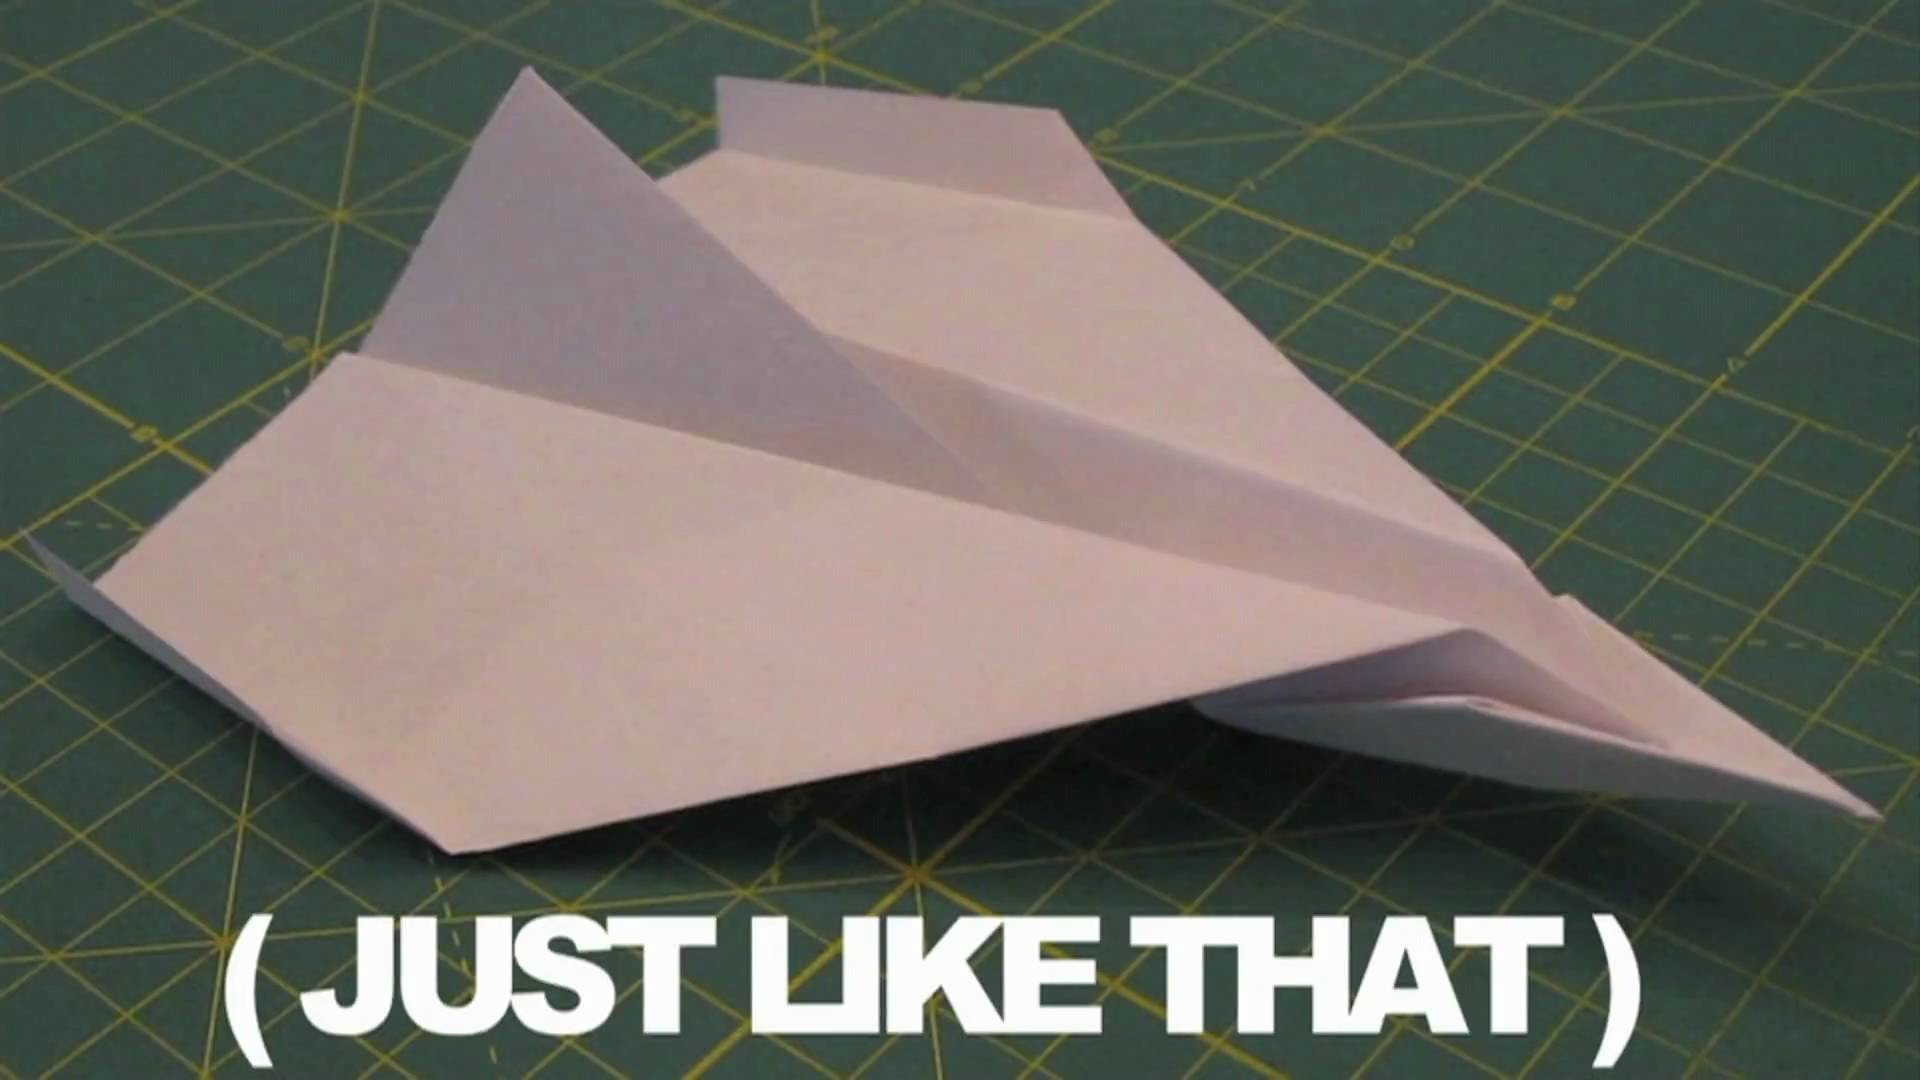 How to make the worlds best paper airplane!